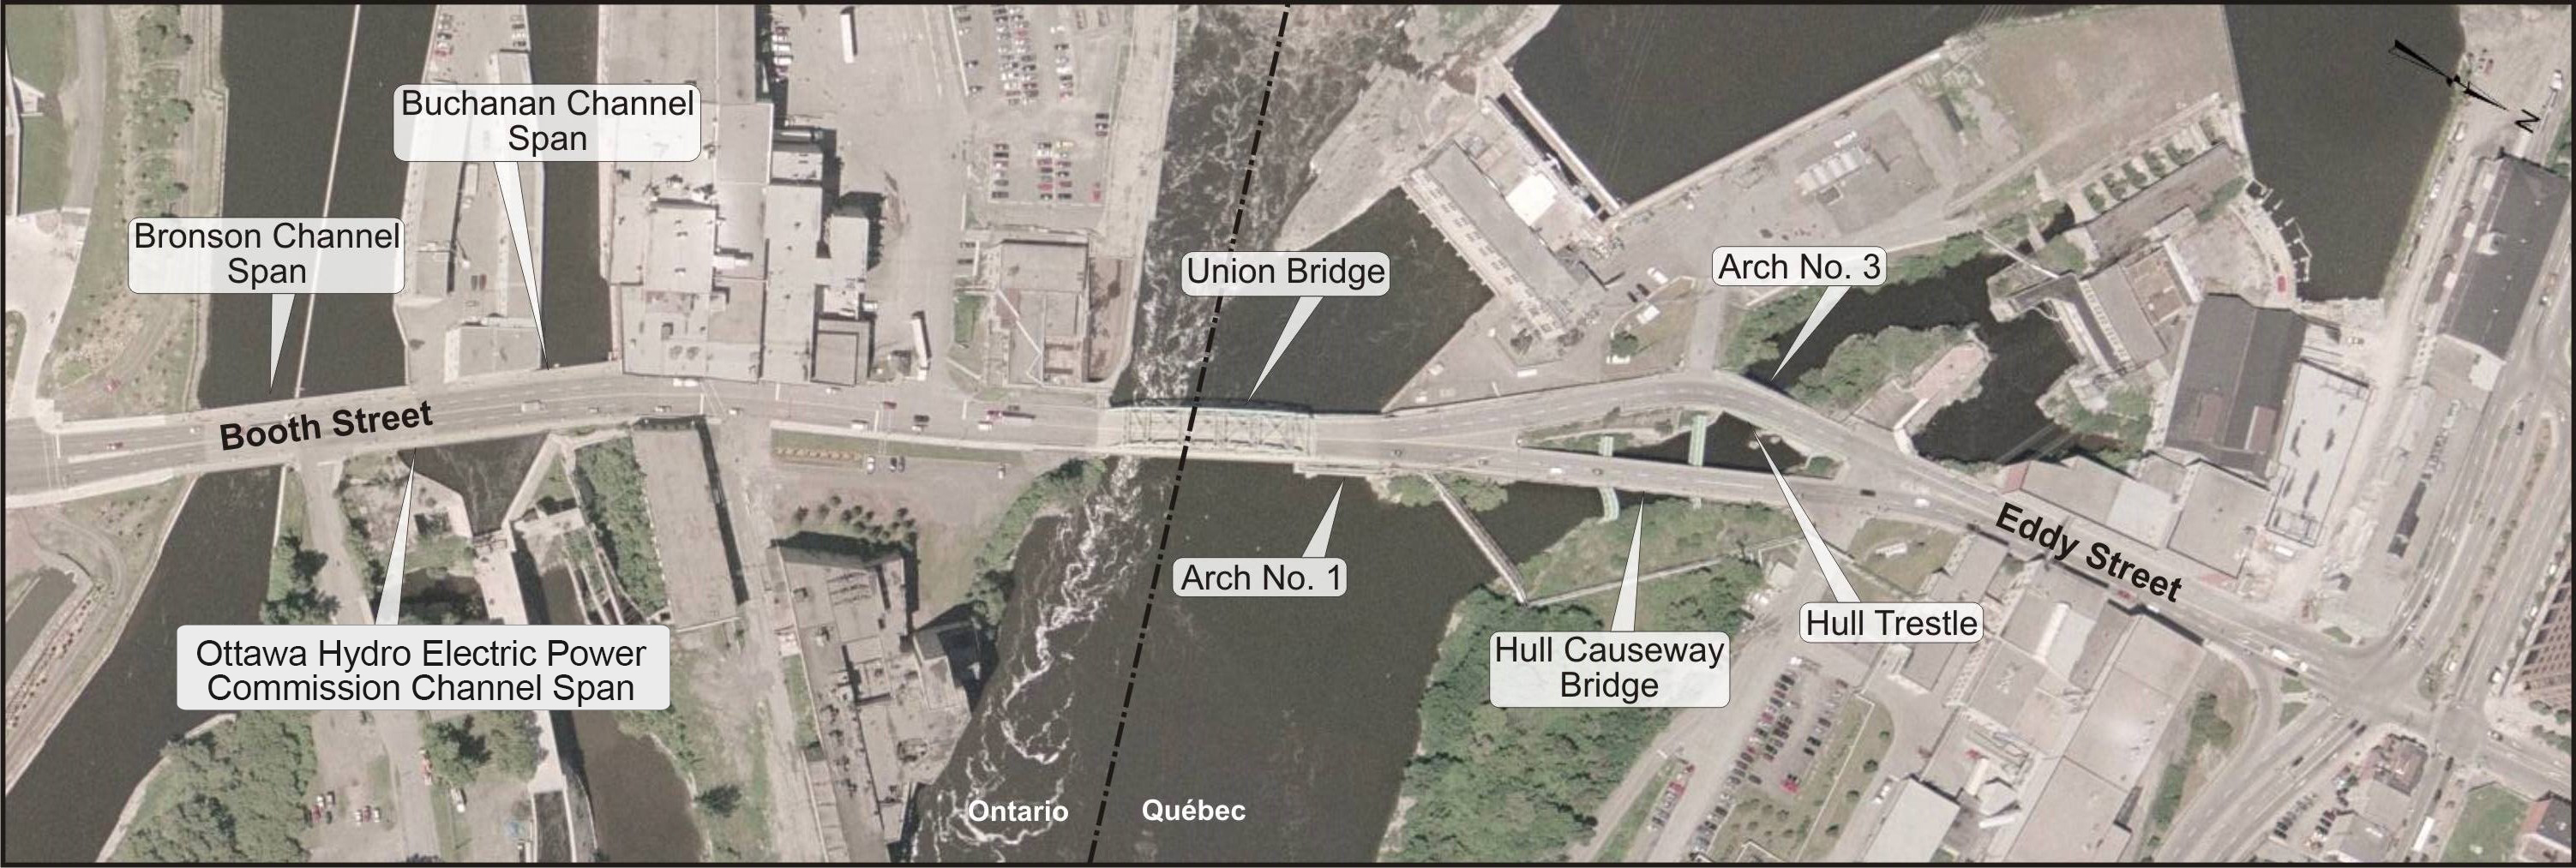 Aerial view of the Chaudiere Crossing - Description below